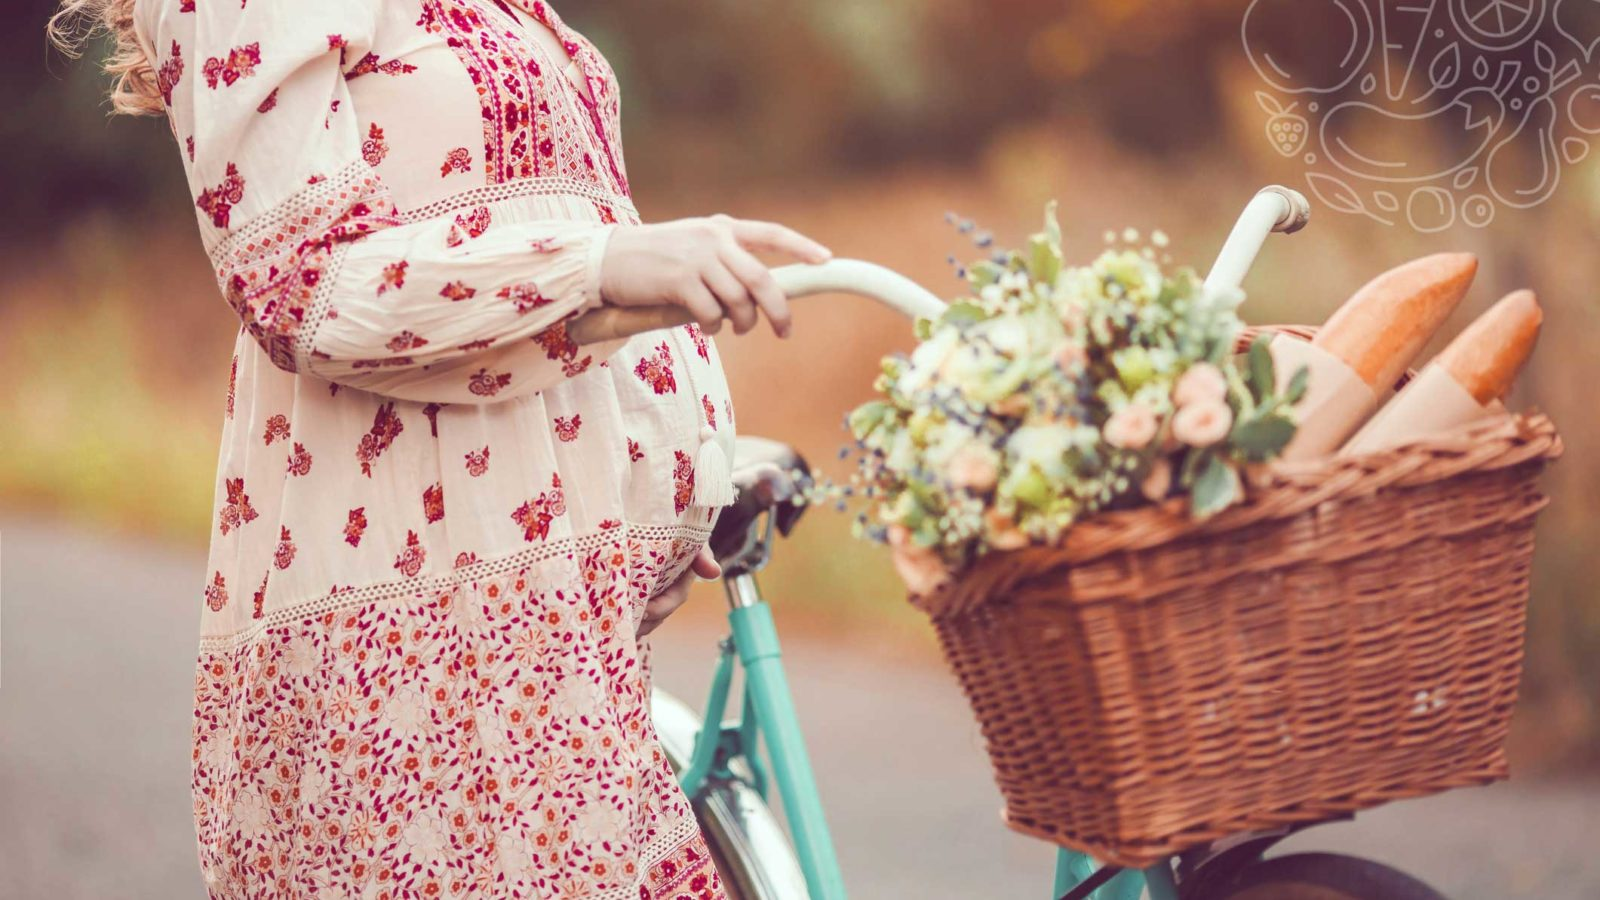 6 pregnancy tips for a healthy baby